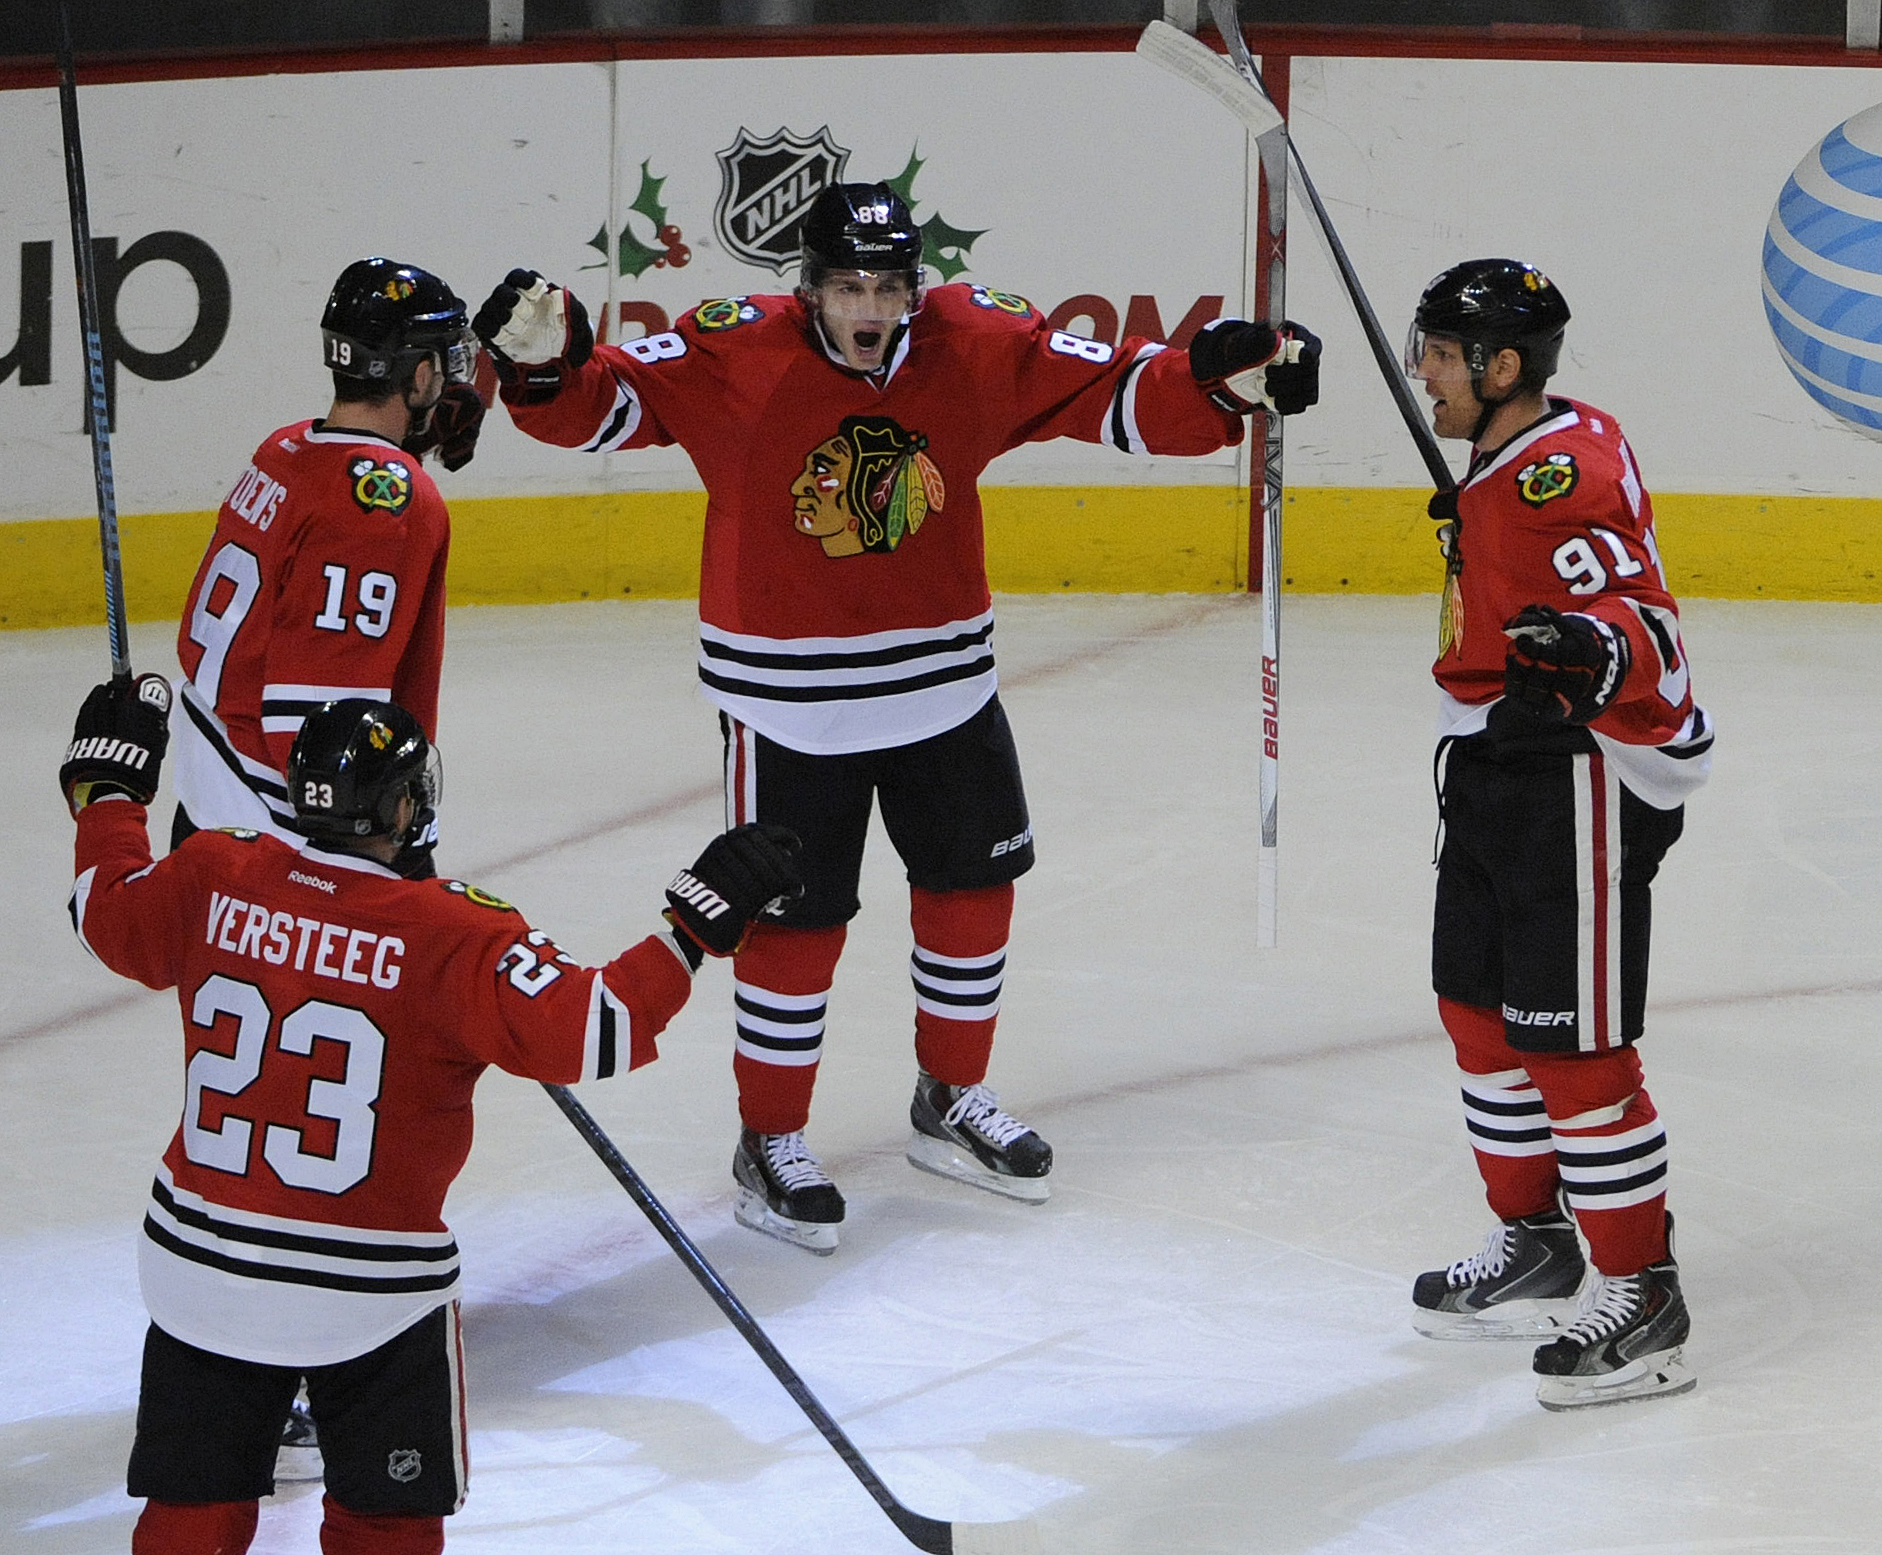 The Hawks celebrate scoring a goal because it makes them happy.